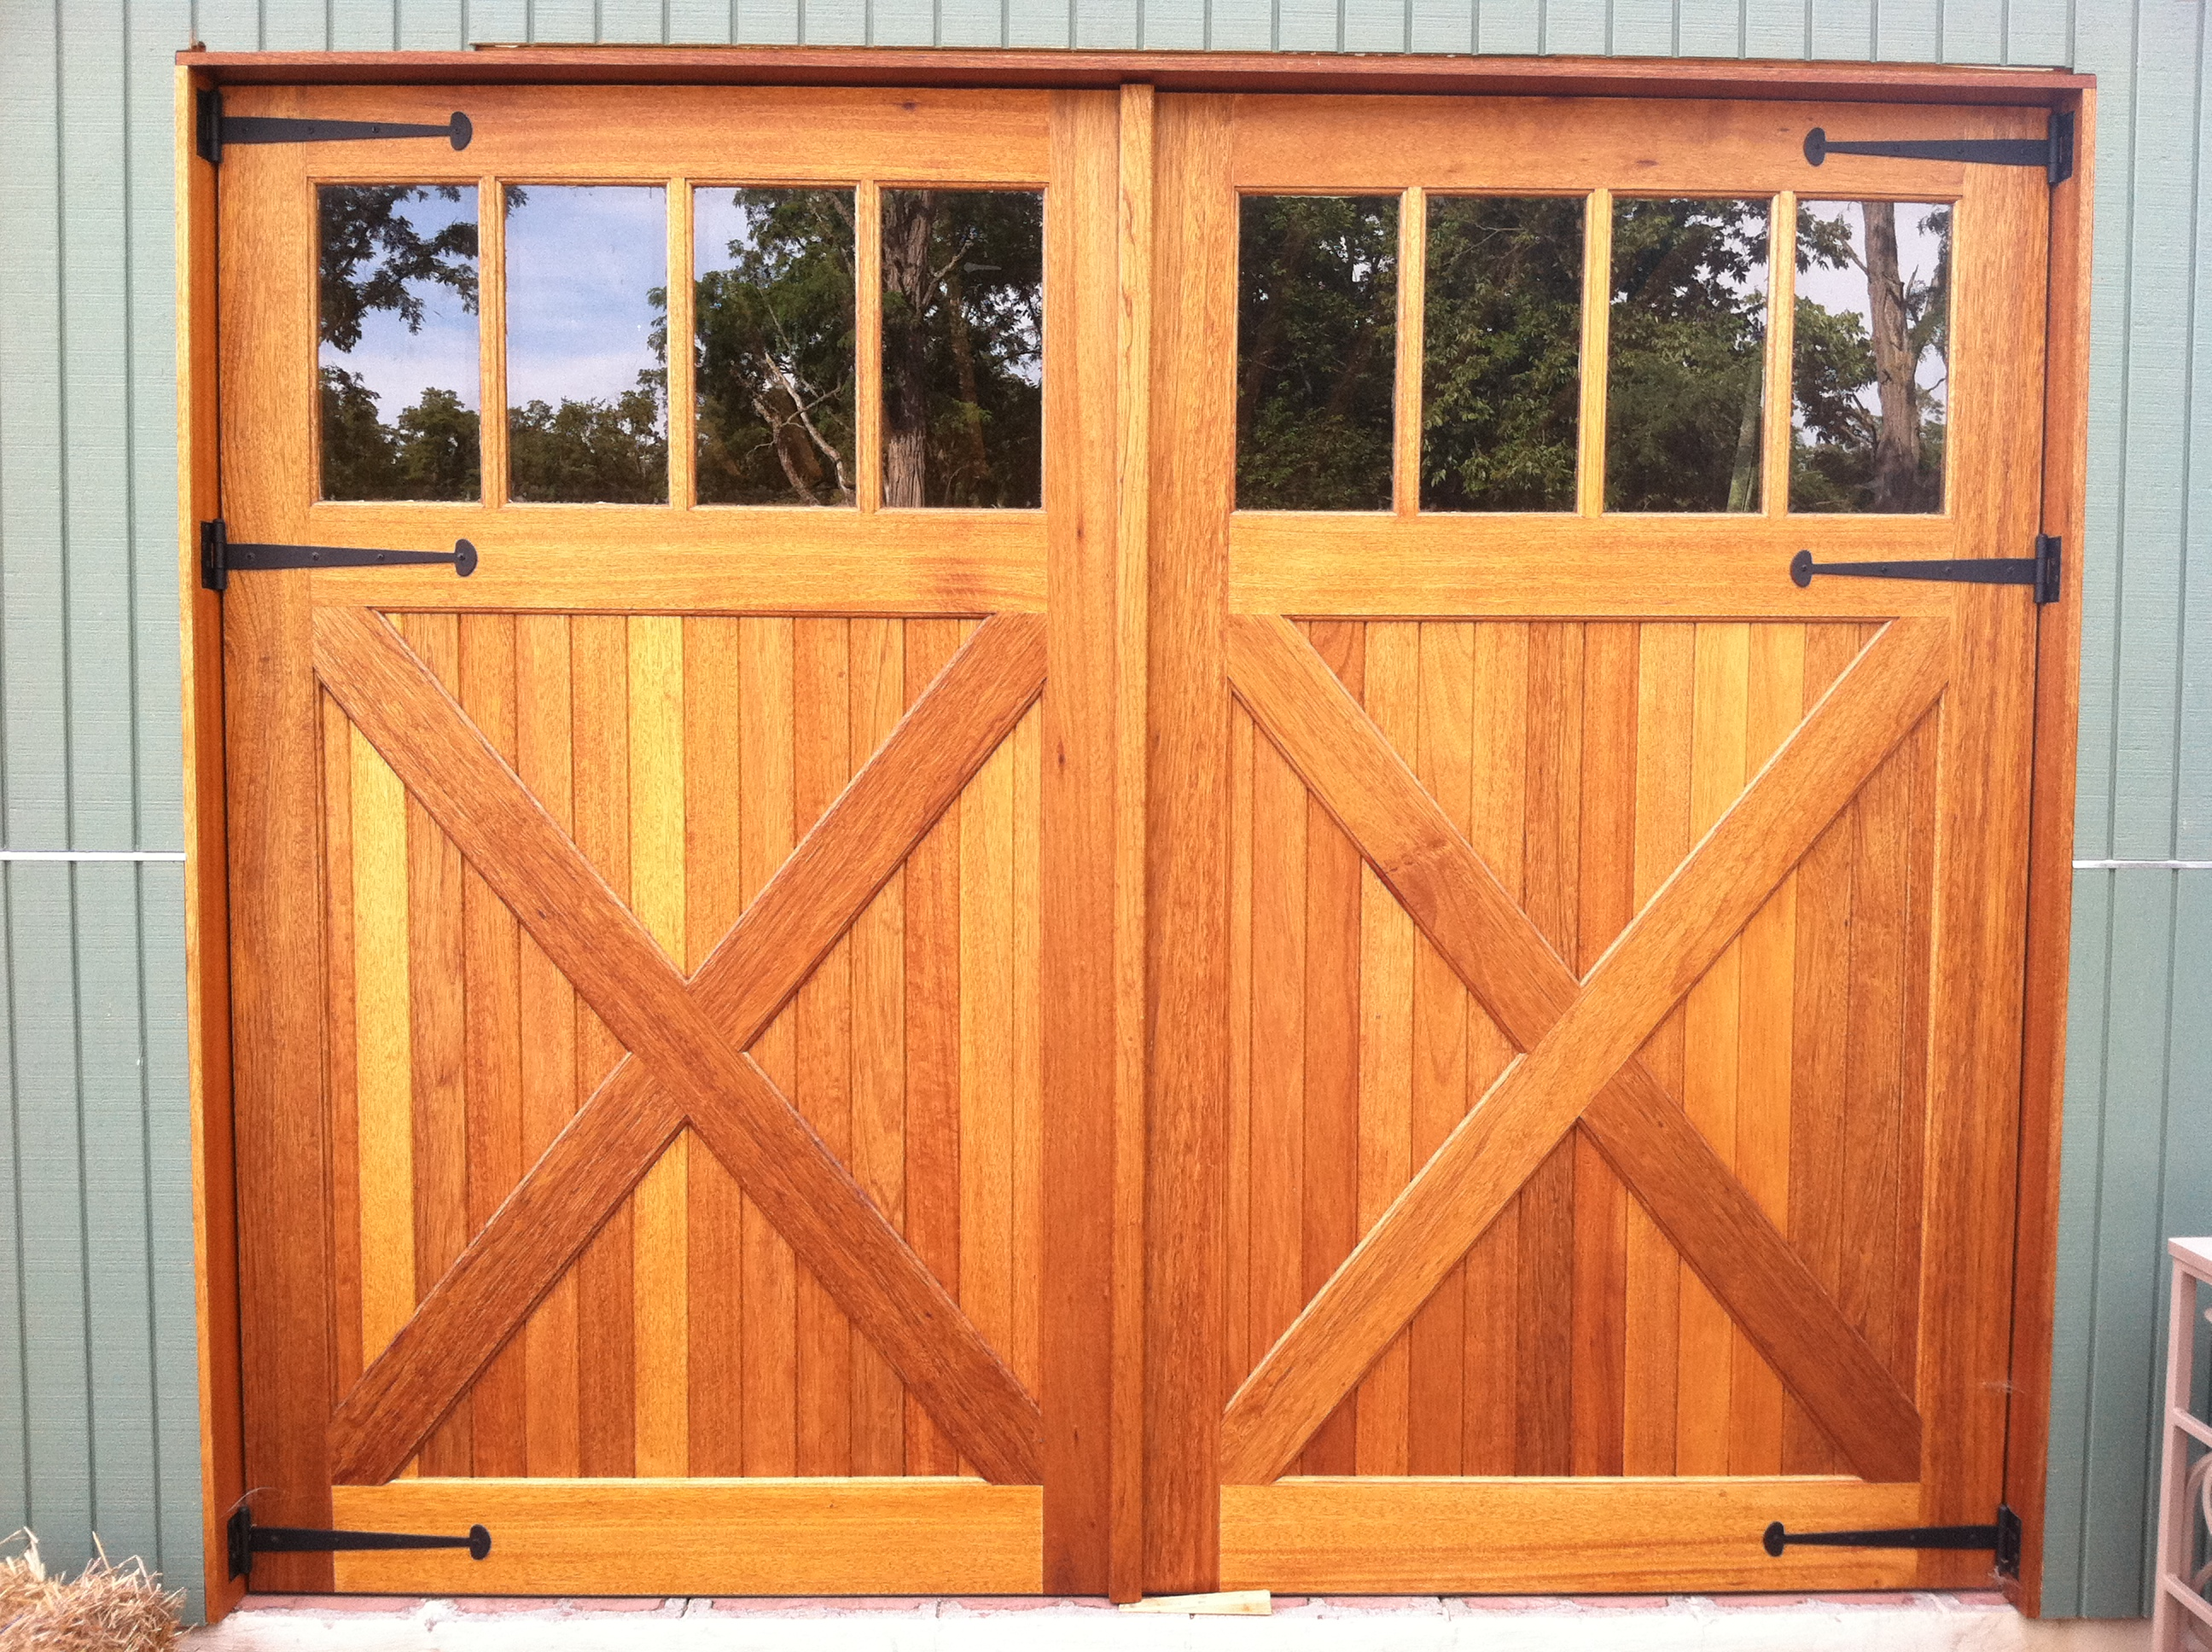 door summit rocklin doors in amarr ca garage carriage oak